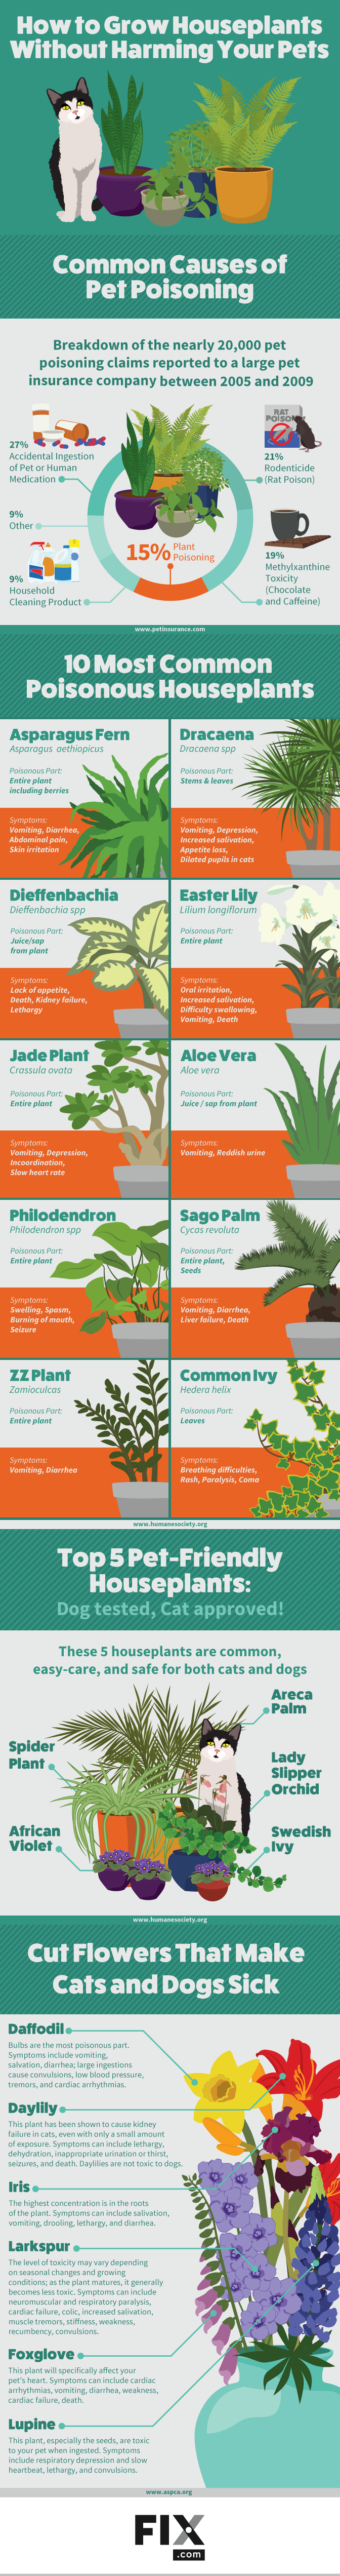 Houseplants that are toxic to your cats and pets infographic